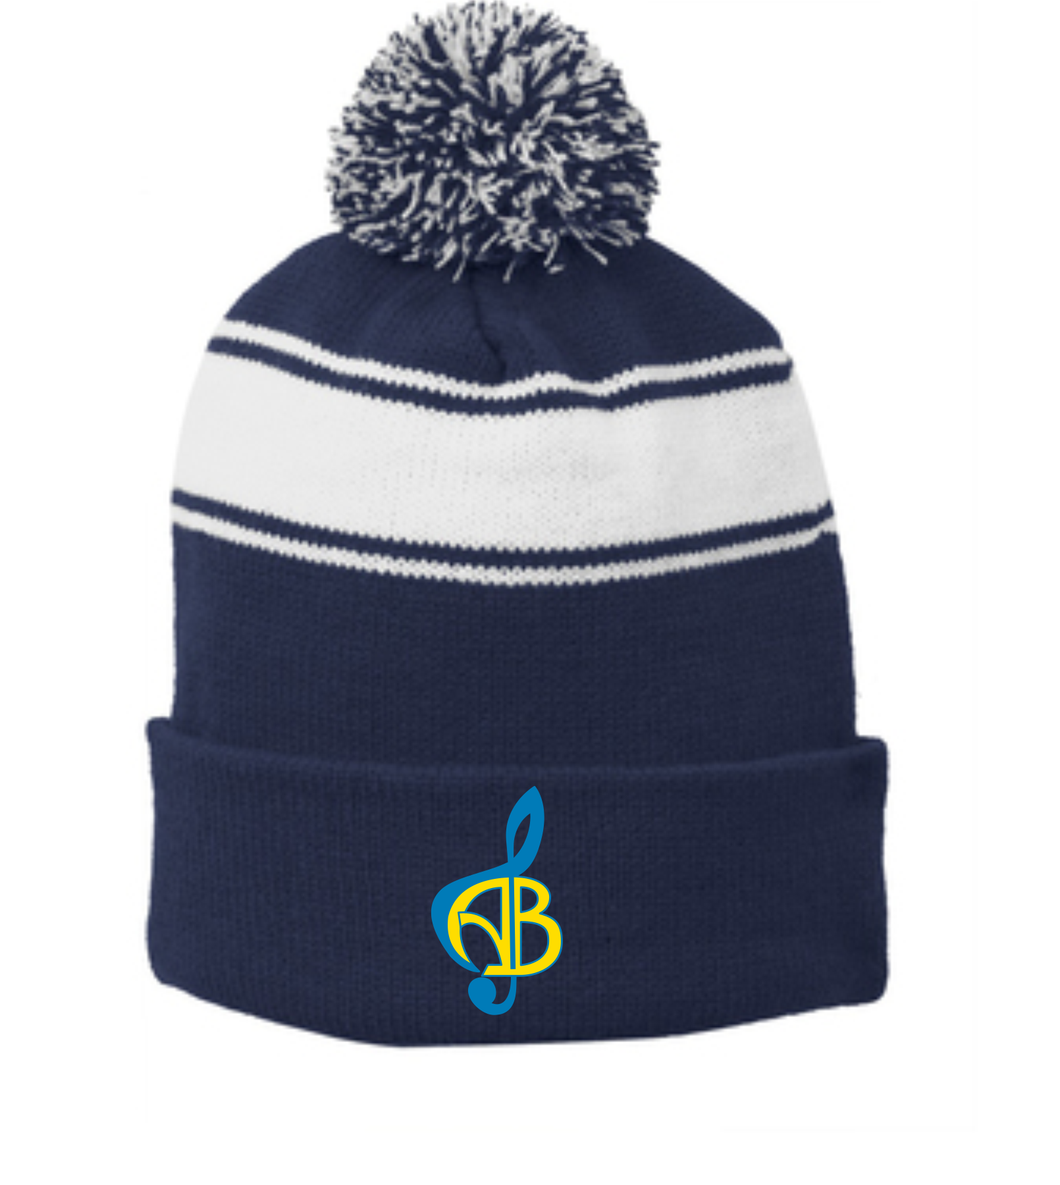 AB Friends of Music Beanie Hat / Sanmar STC28